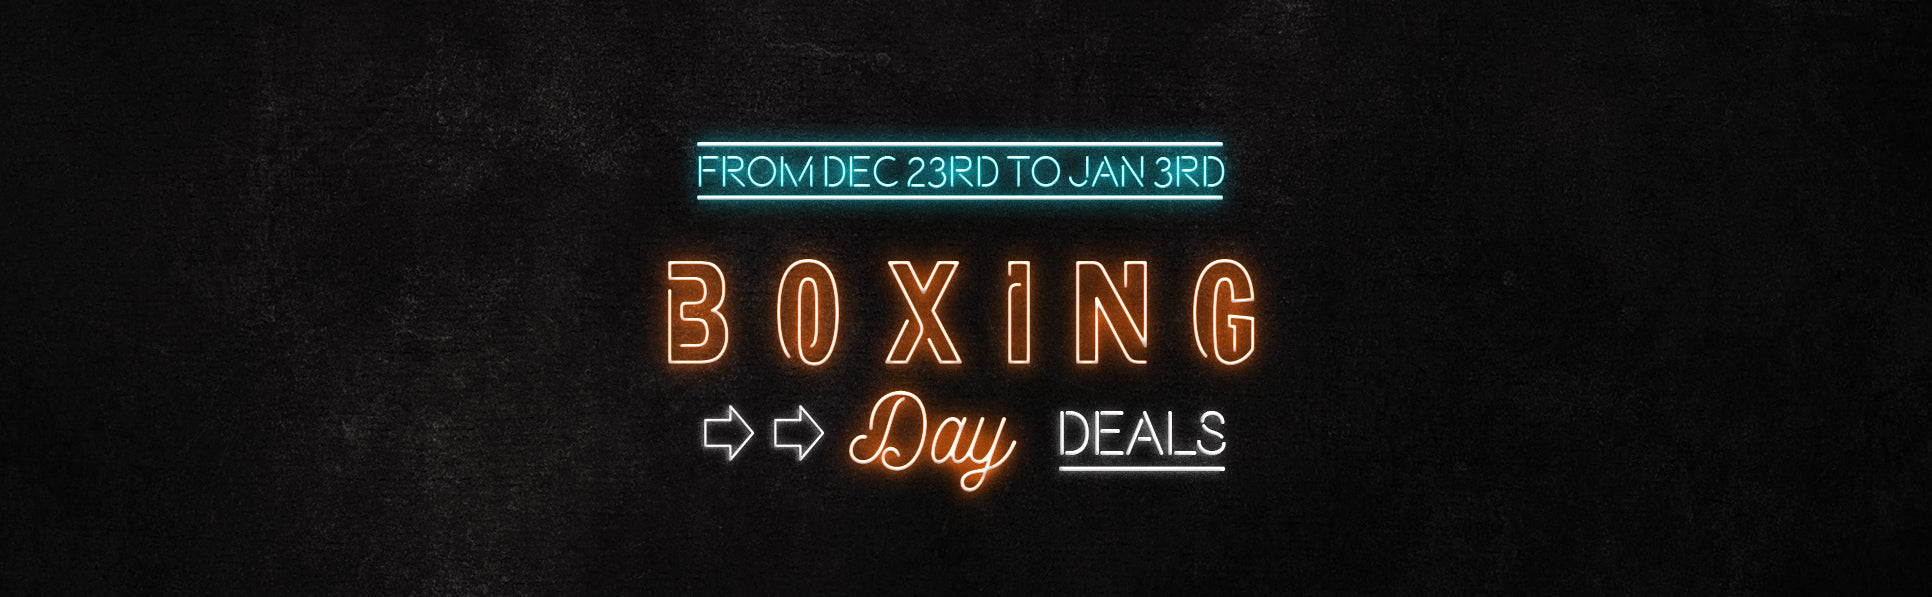 boxing-week-deals